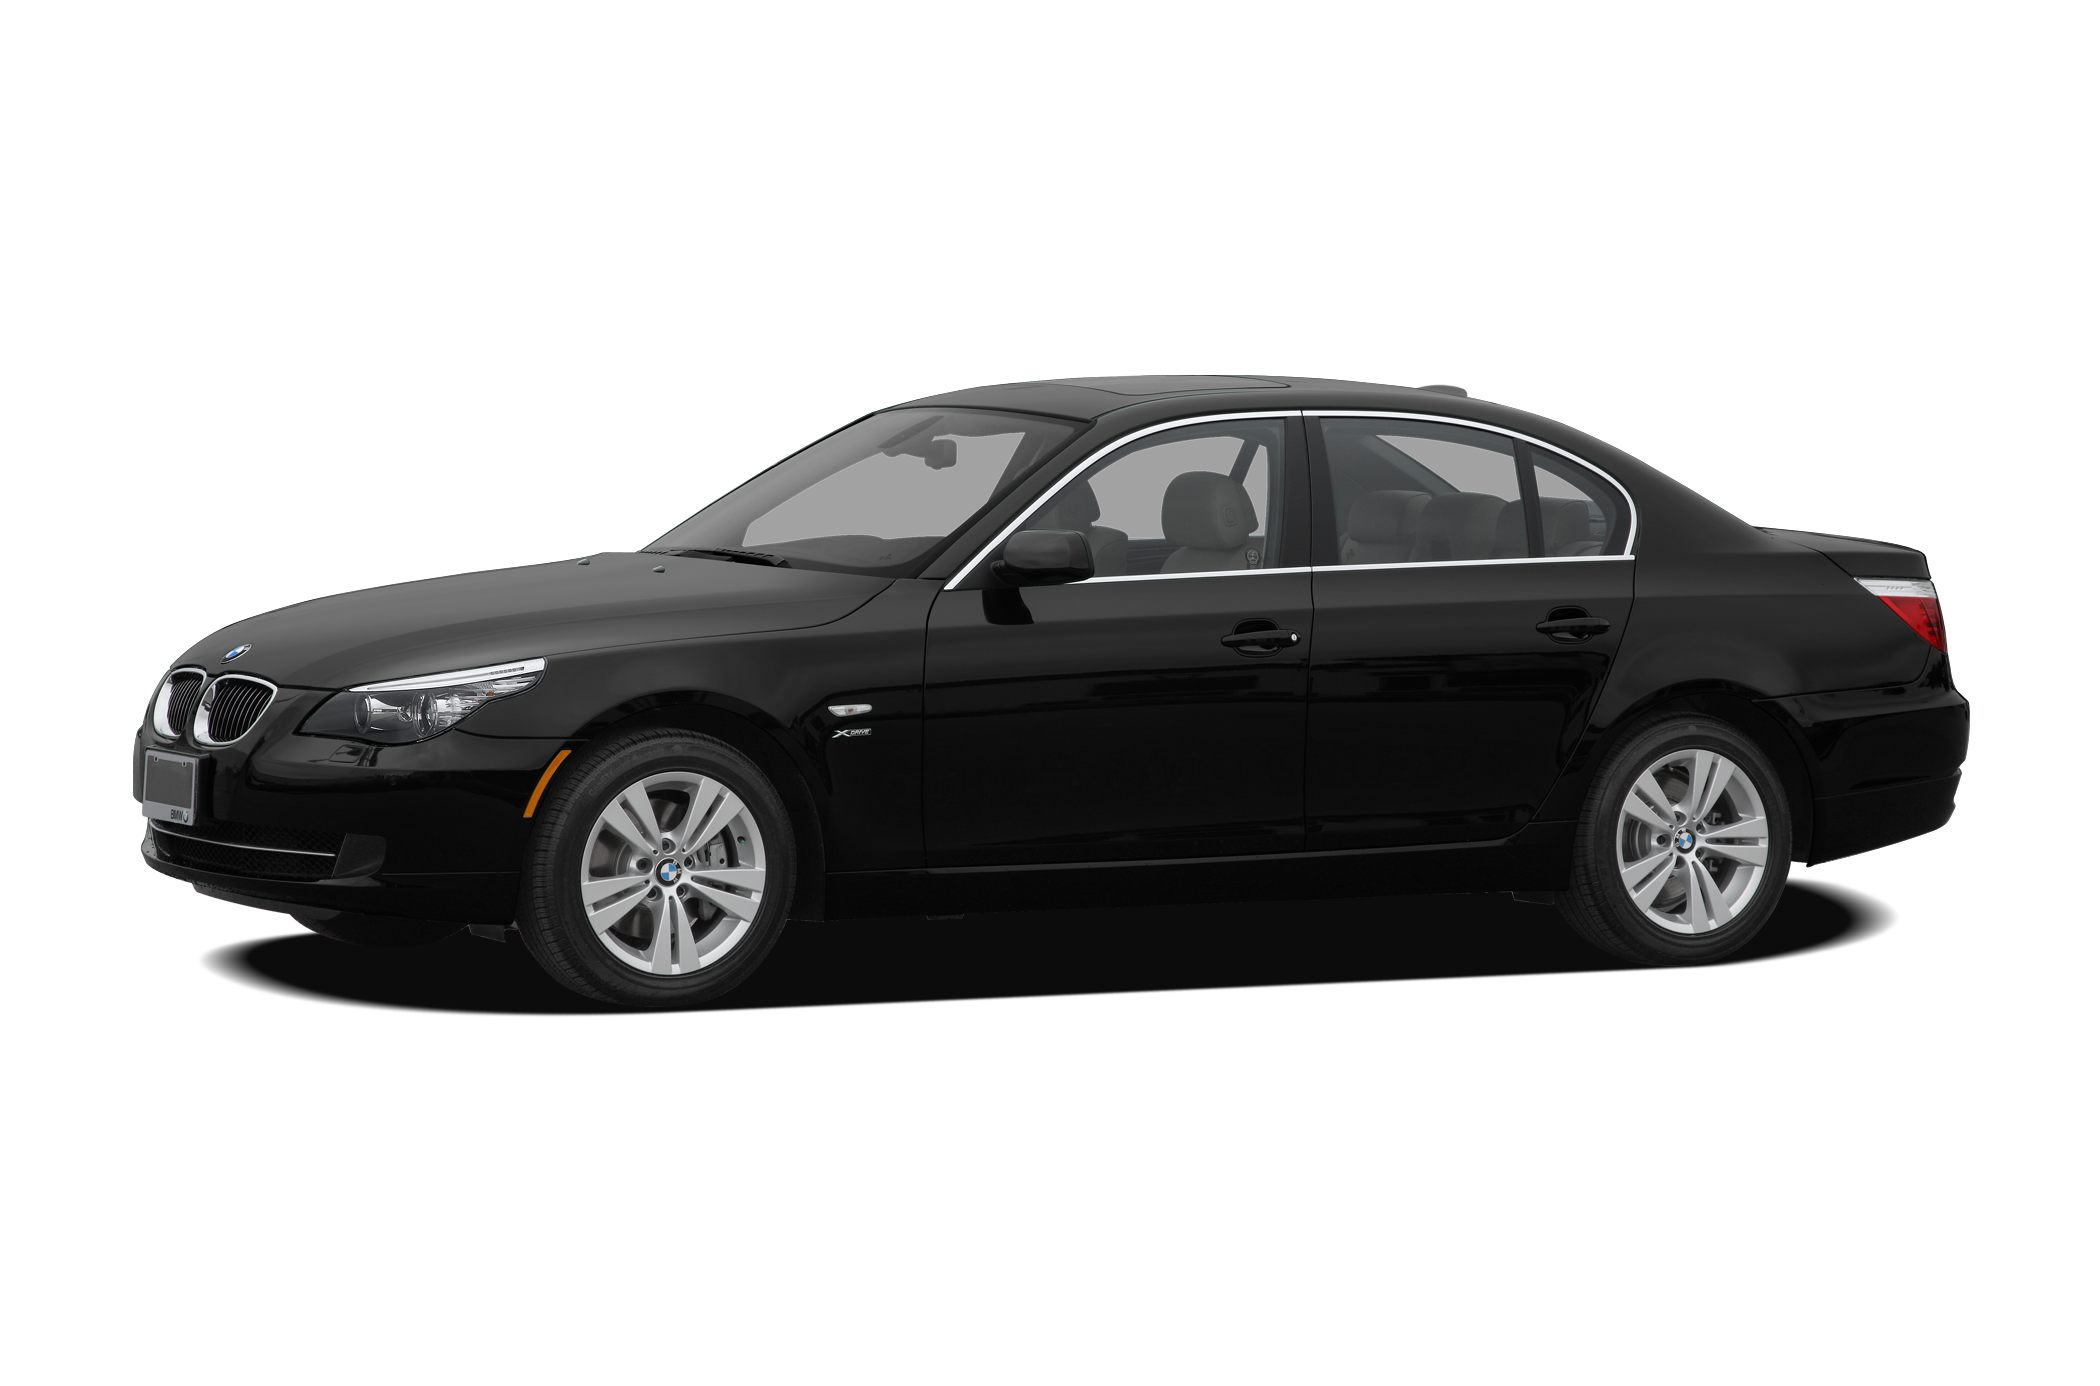 BMW Cars Reviews That You Must Know